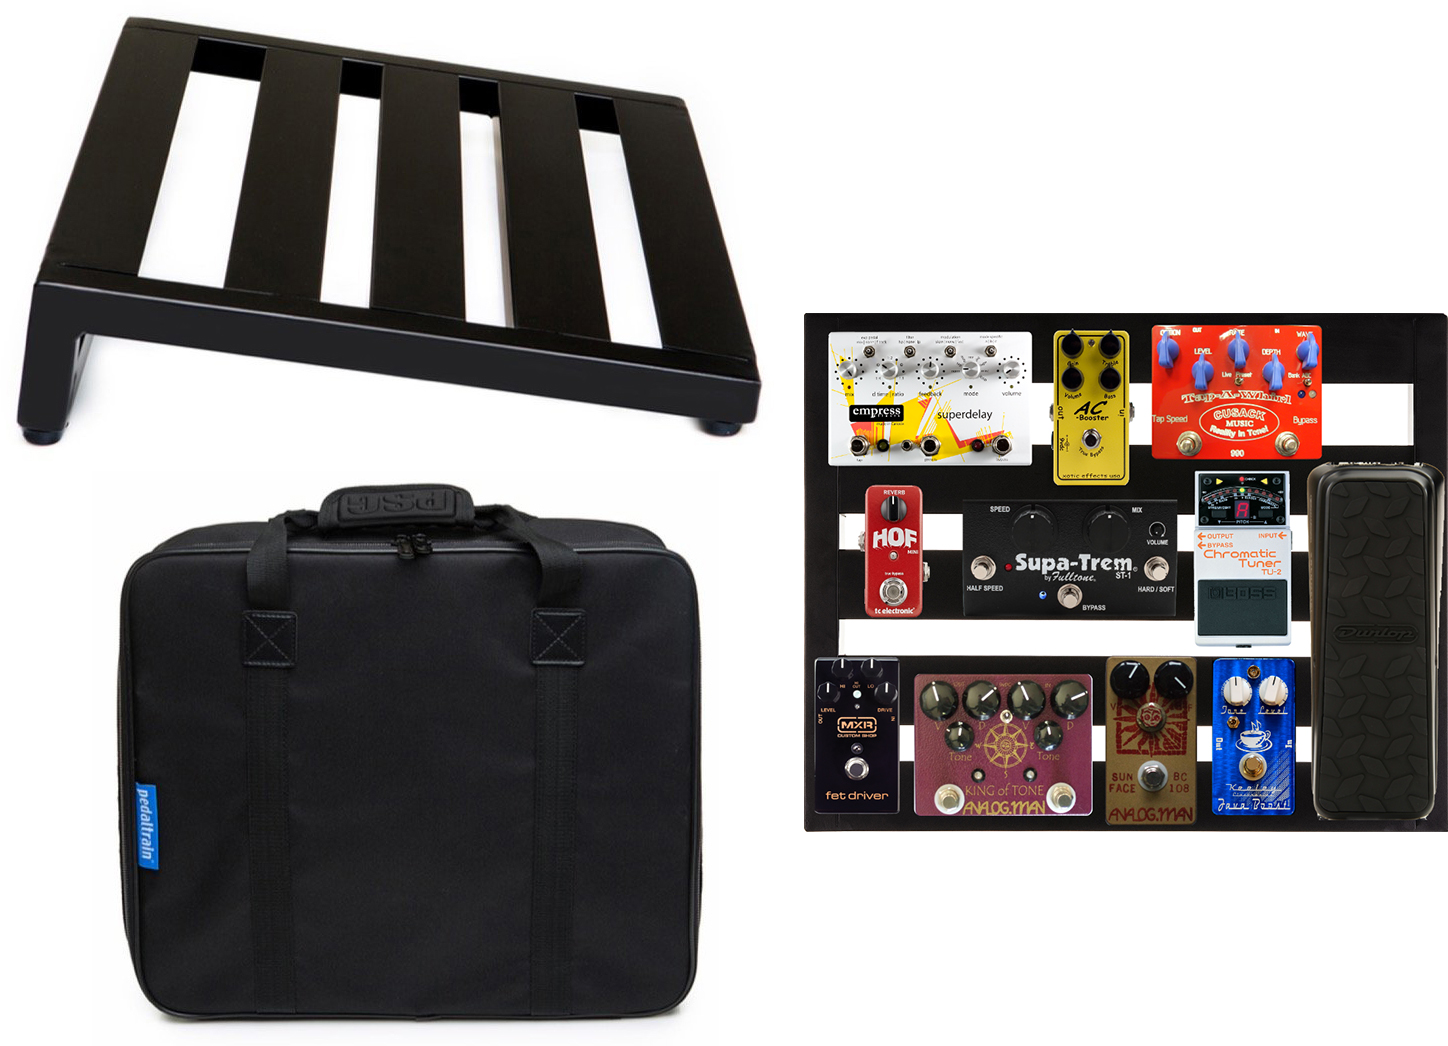 The Best Powered Unpowered Pedalboards 2018 Gearank Wiring A Pedal Board Pedaltrain Novo 18 Sc Pedalboard With Soft Case